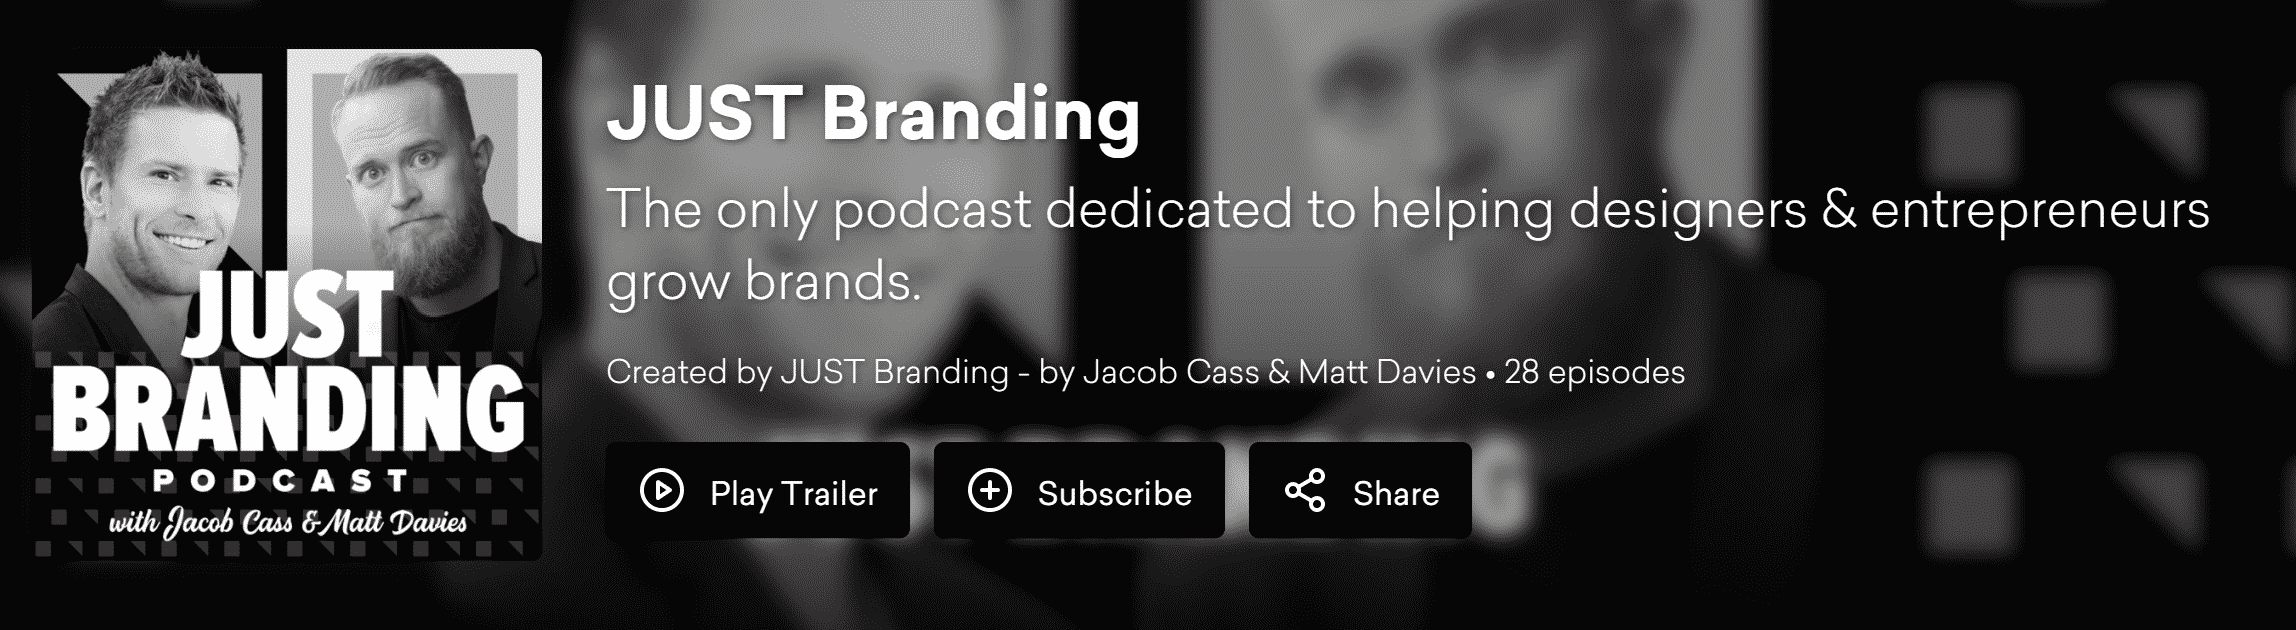 Podcast landing page with key elements